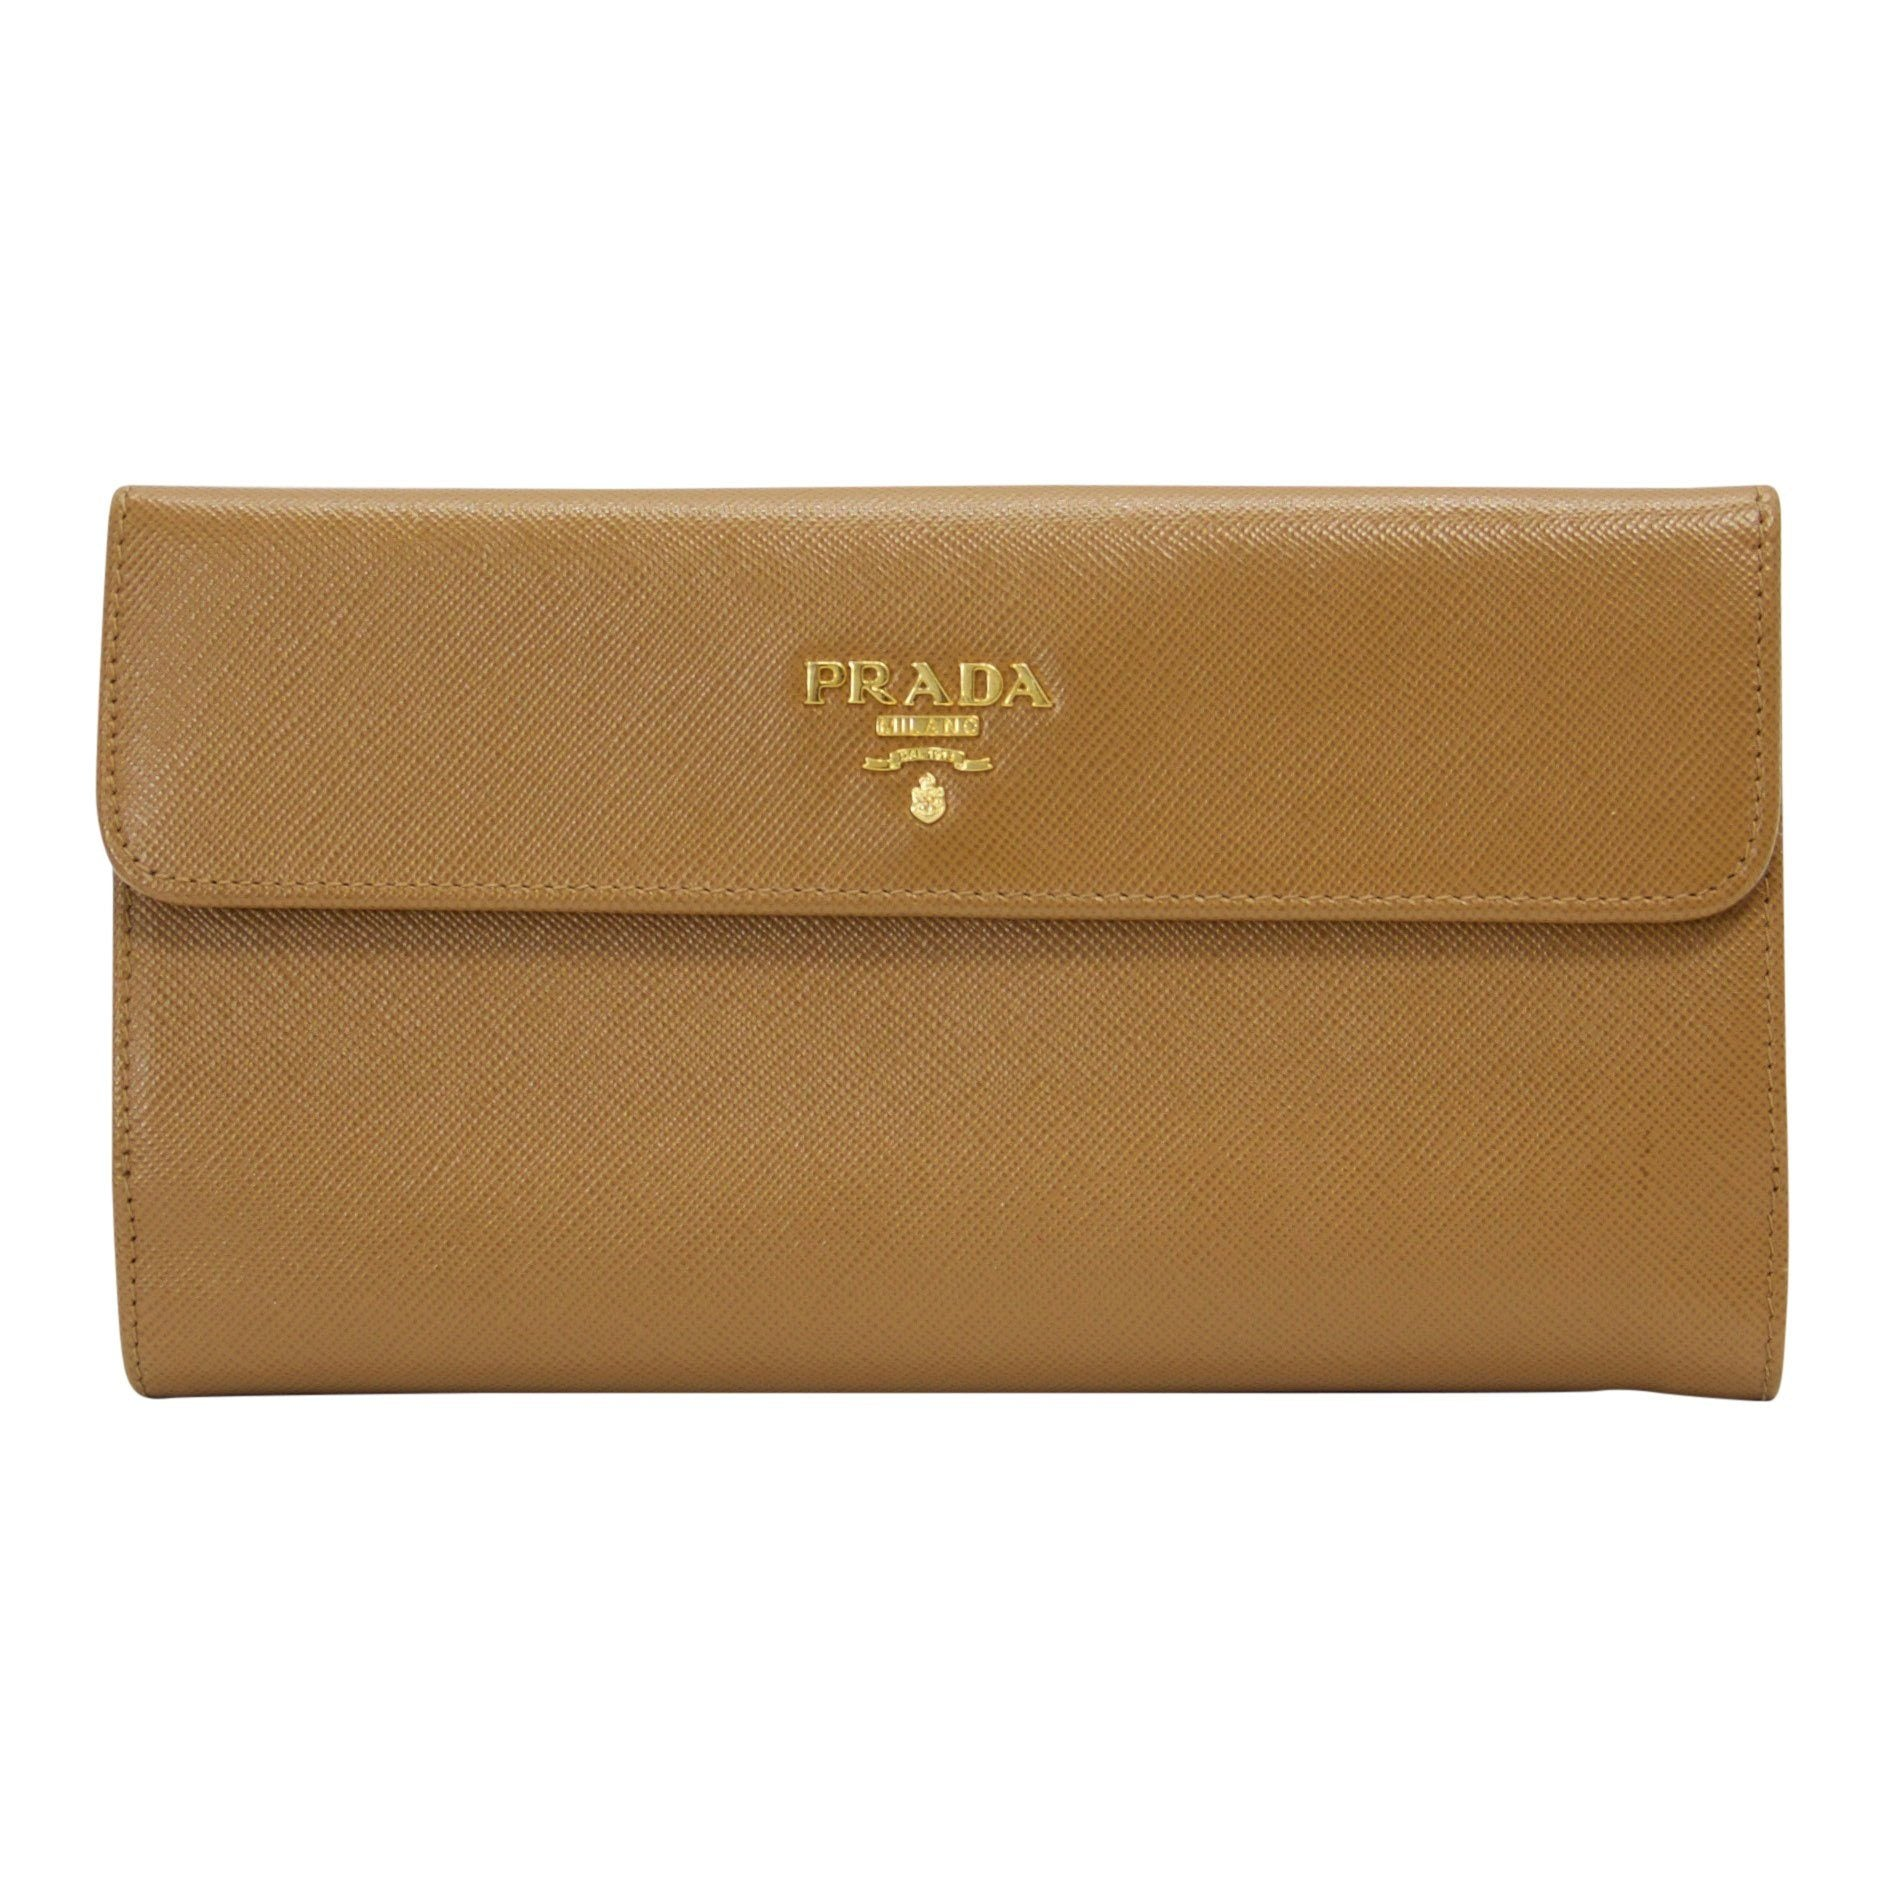 802672f95250 ... leather ribbon long wallet purse 8d50a dbd63  real prada saffiano  travel wallet e881b fb25f